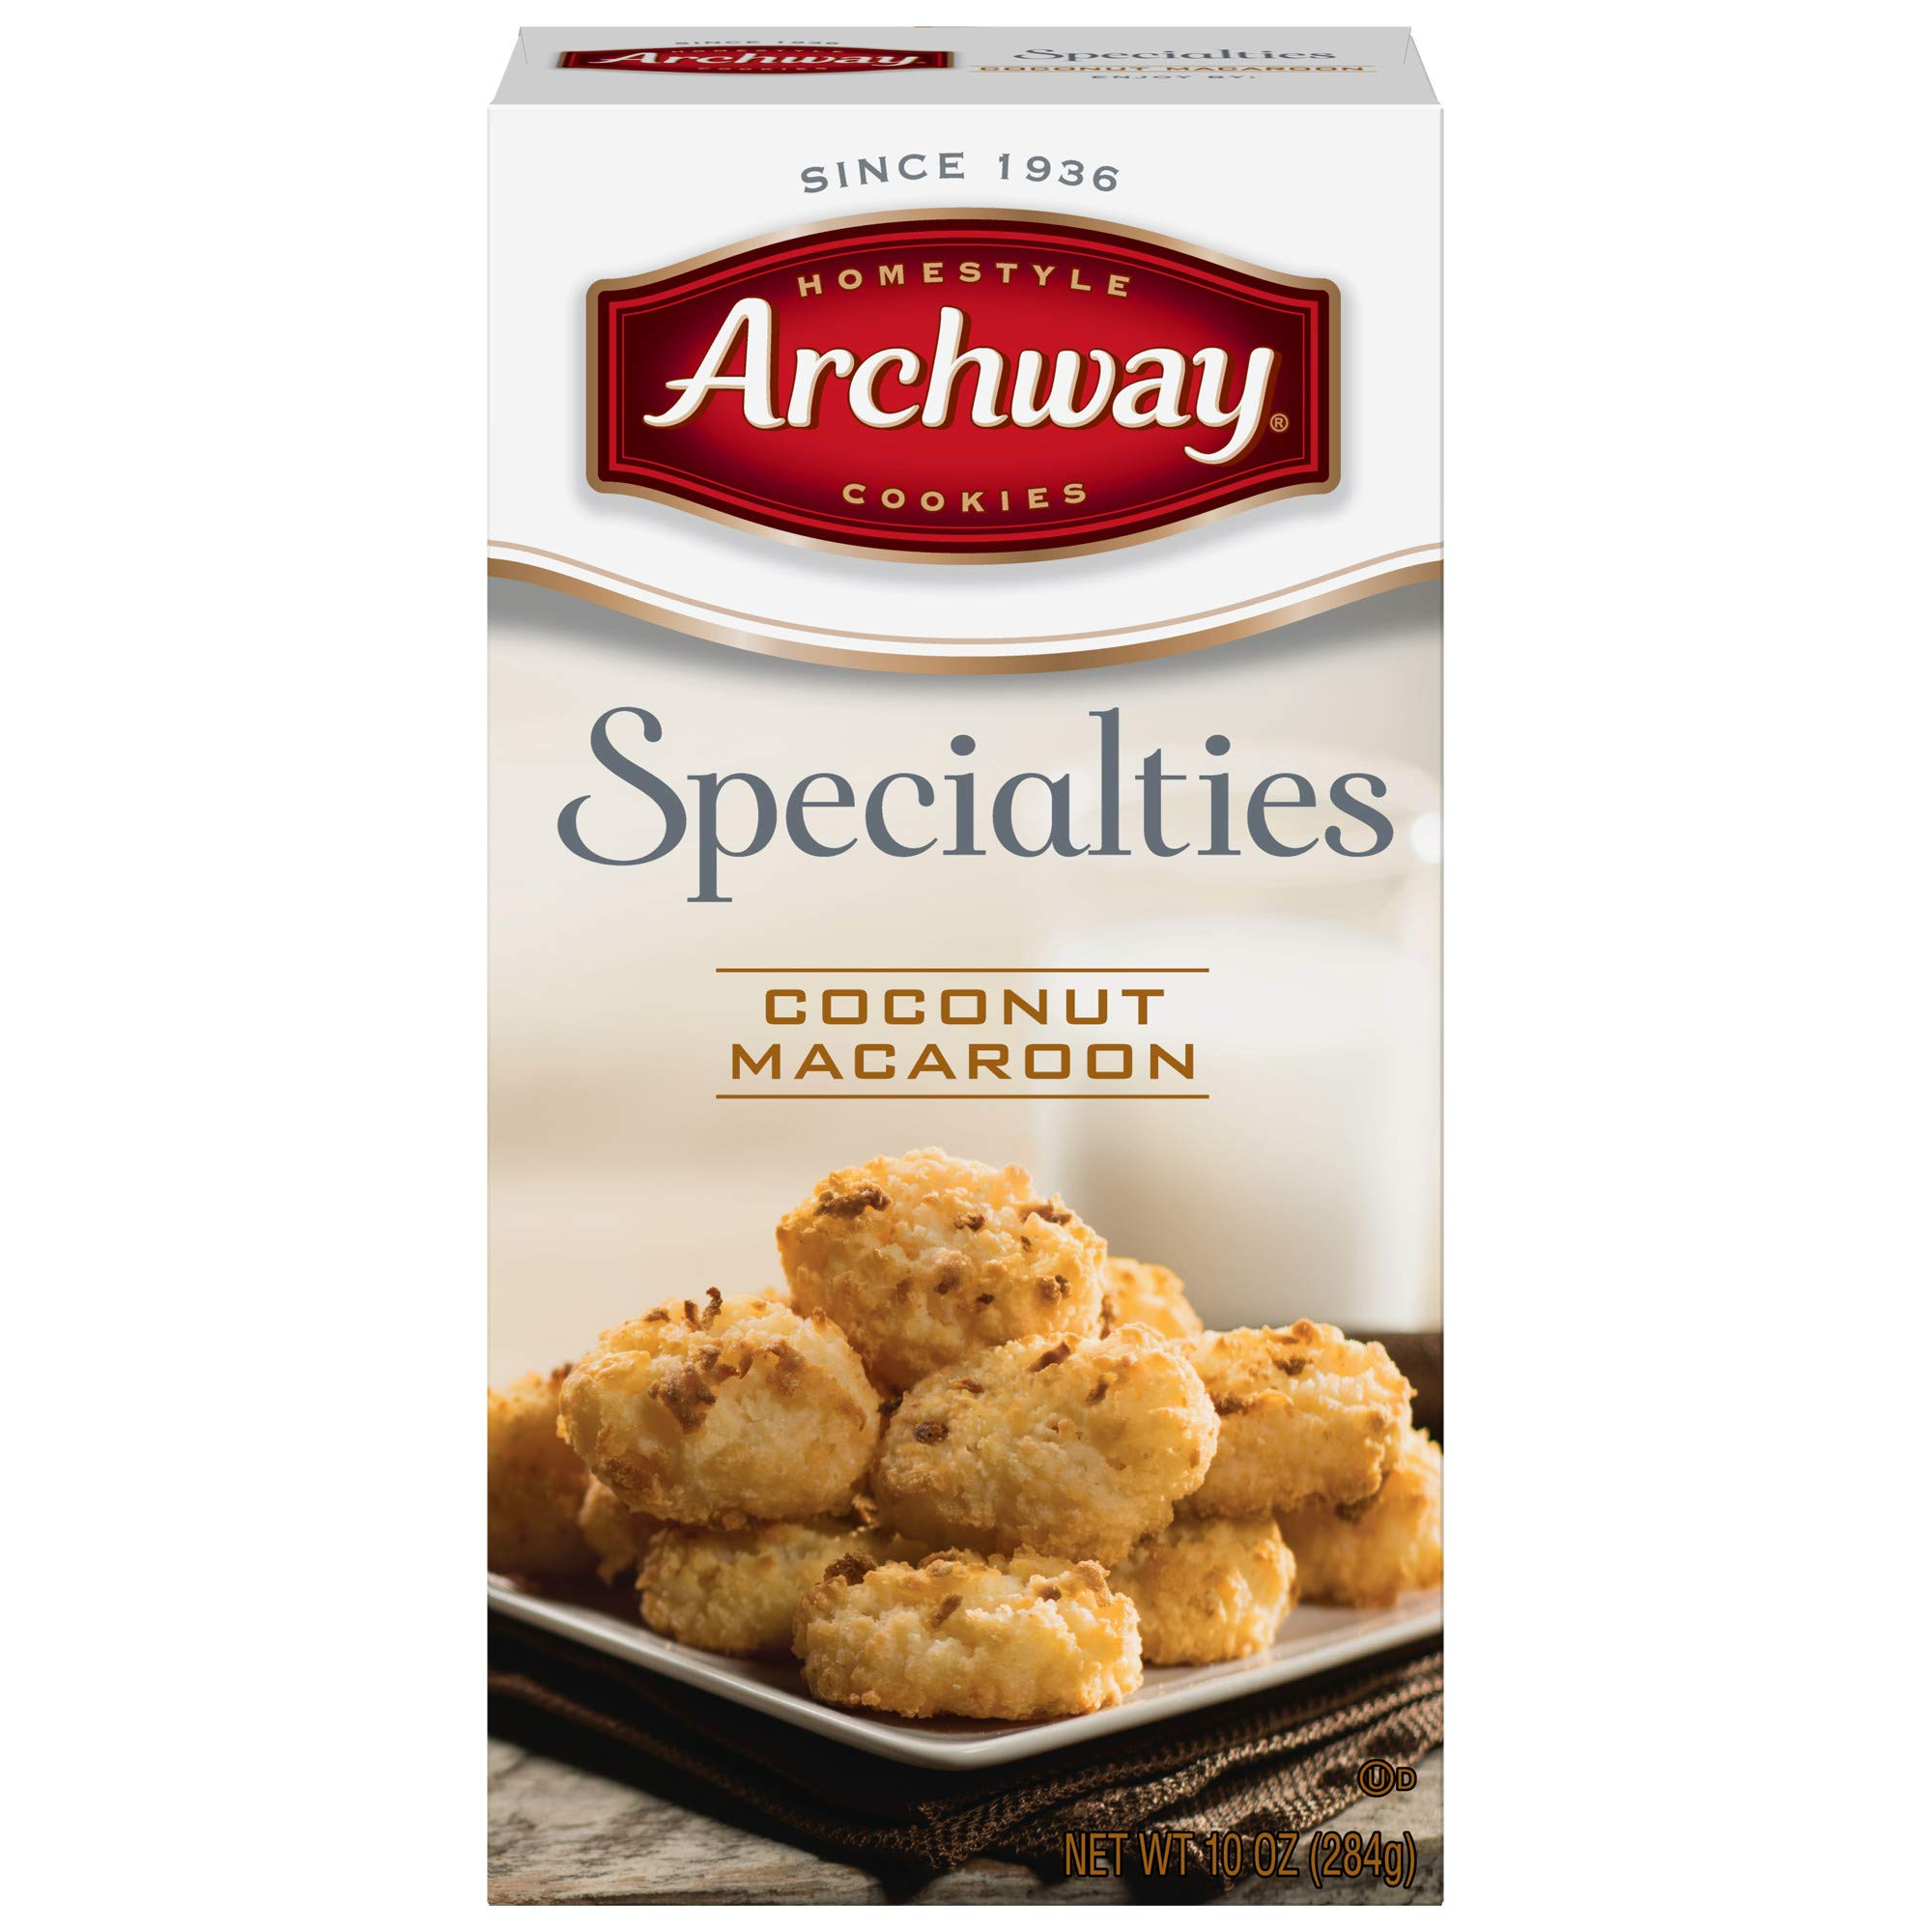 Archway Cookies Iced Molasses 12 Ounce Amazon Grocery